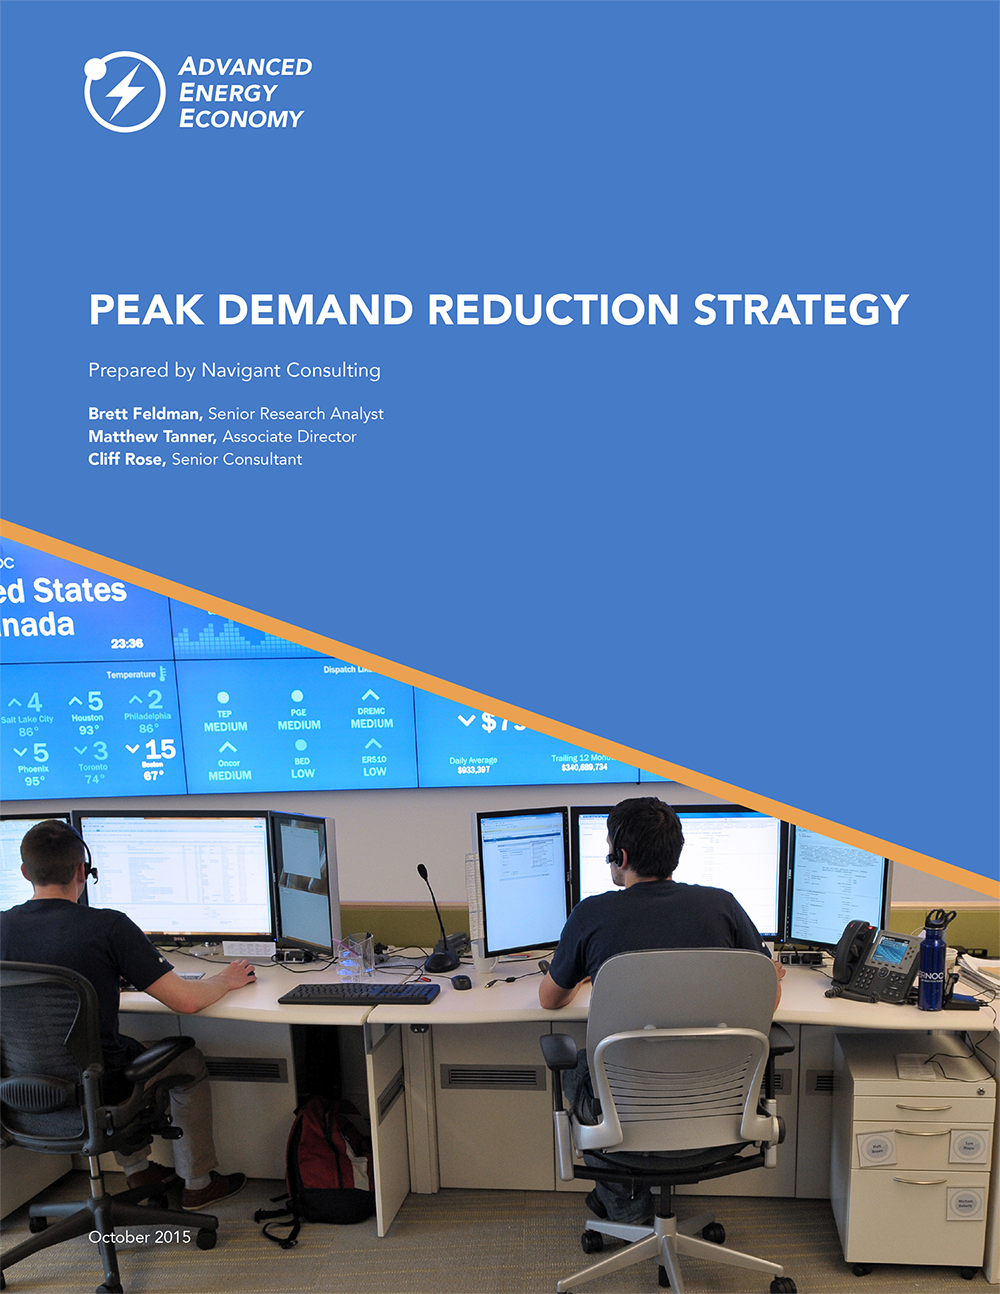 Peak Demand Reduction Strategy